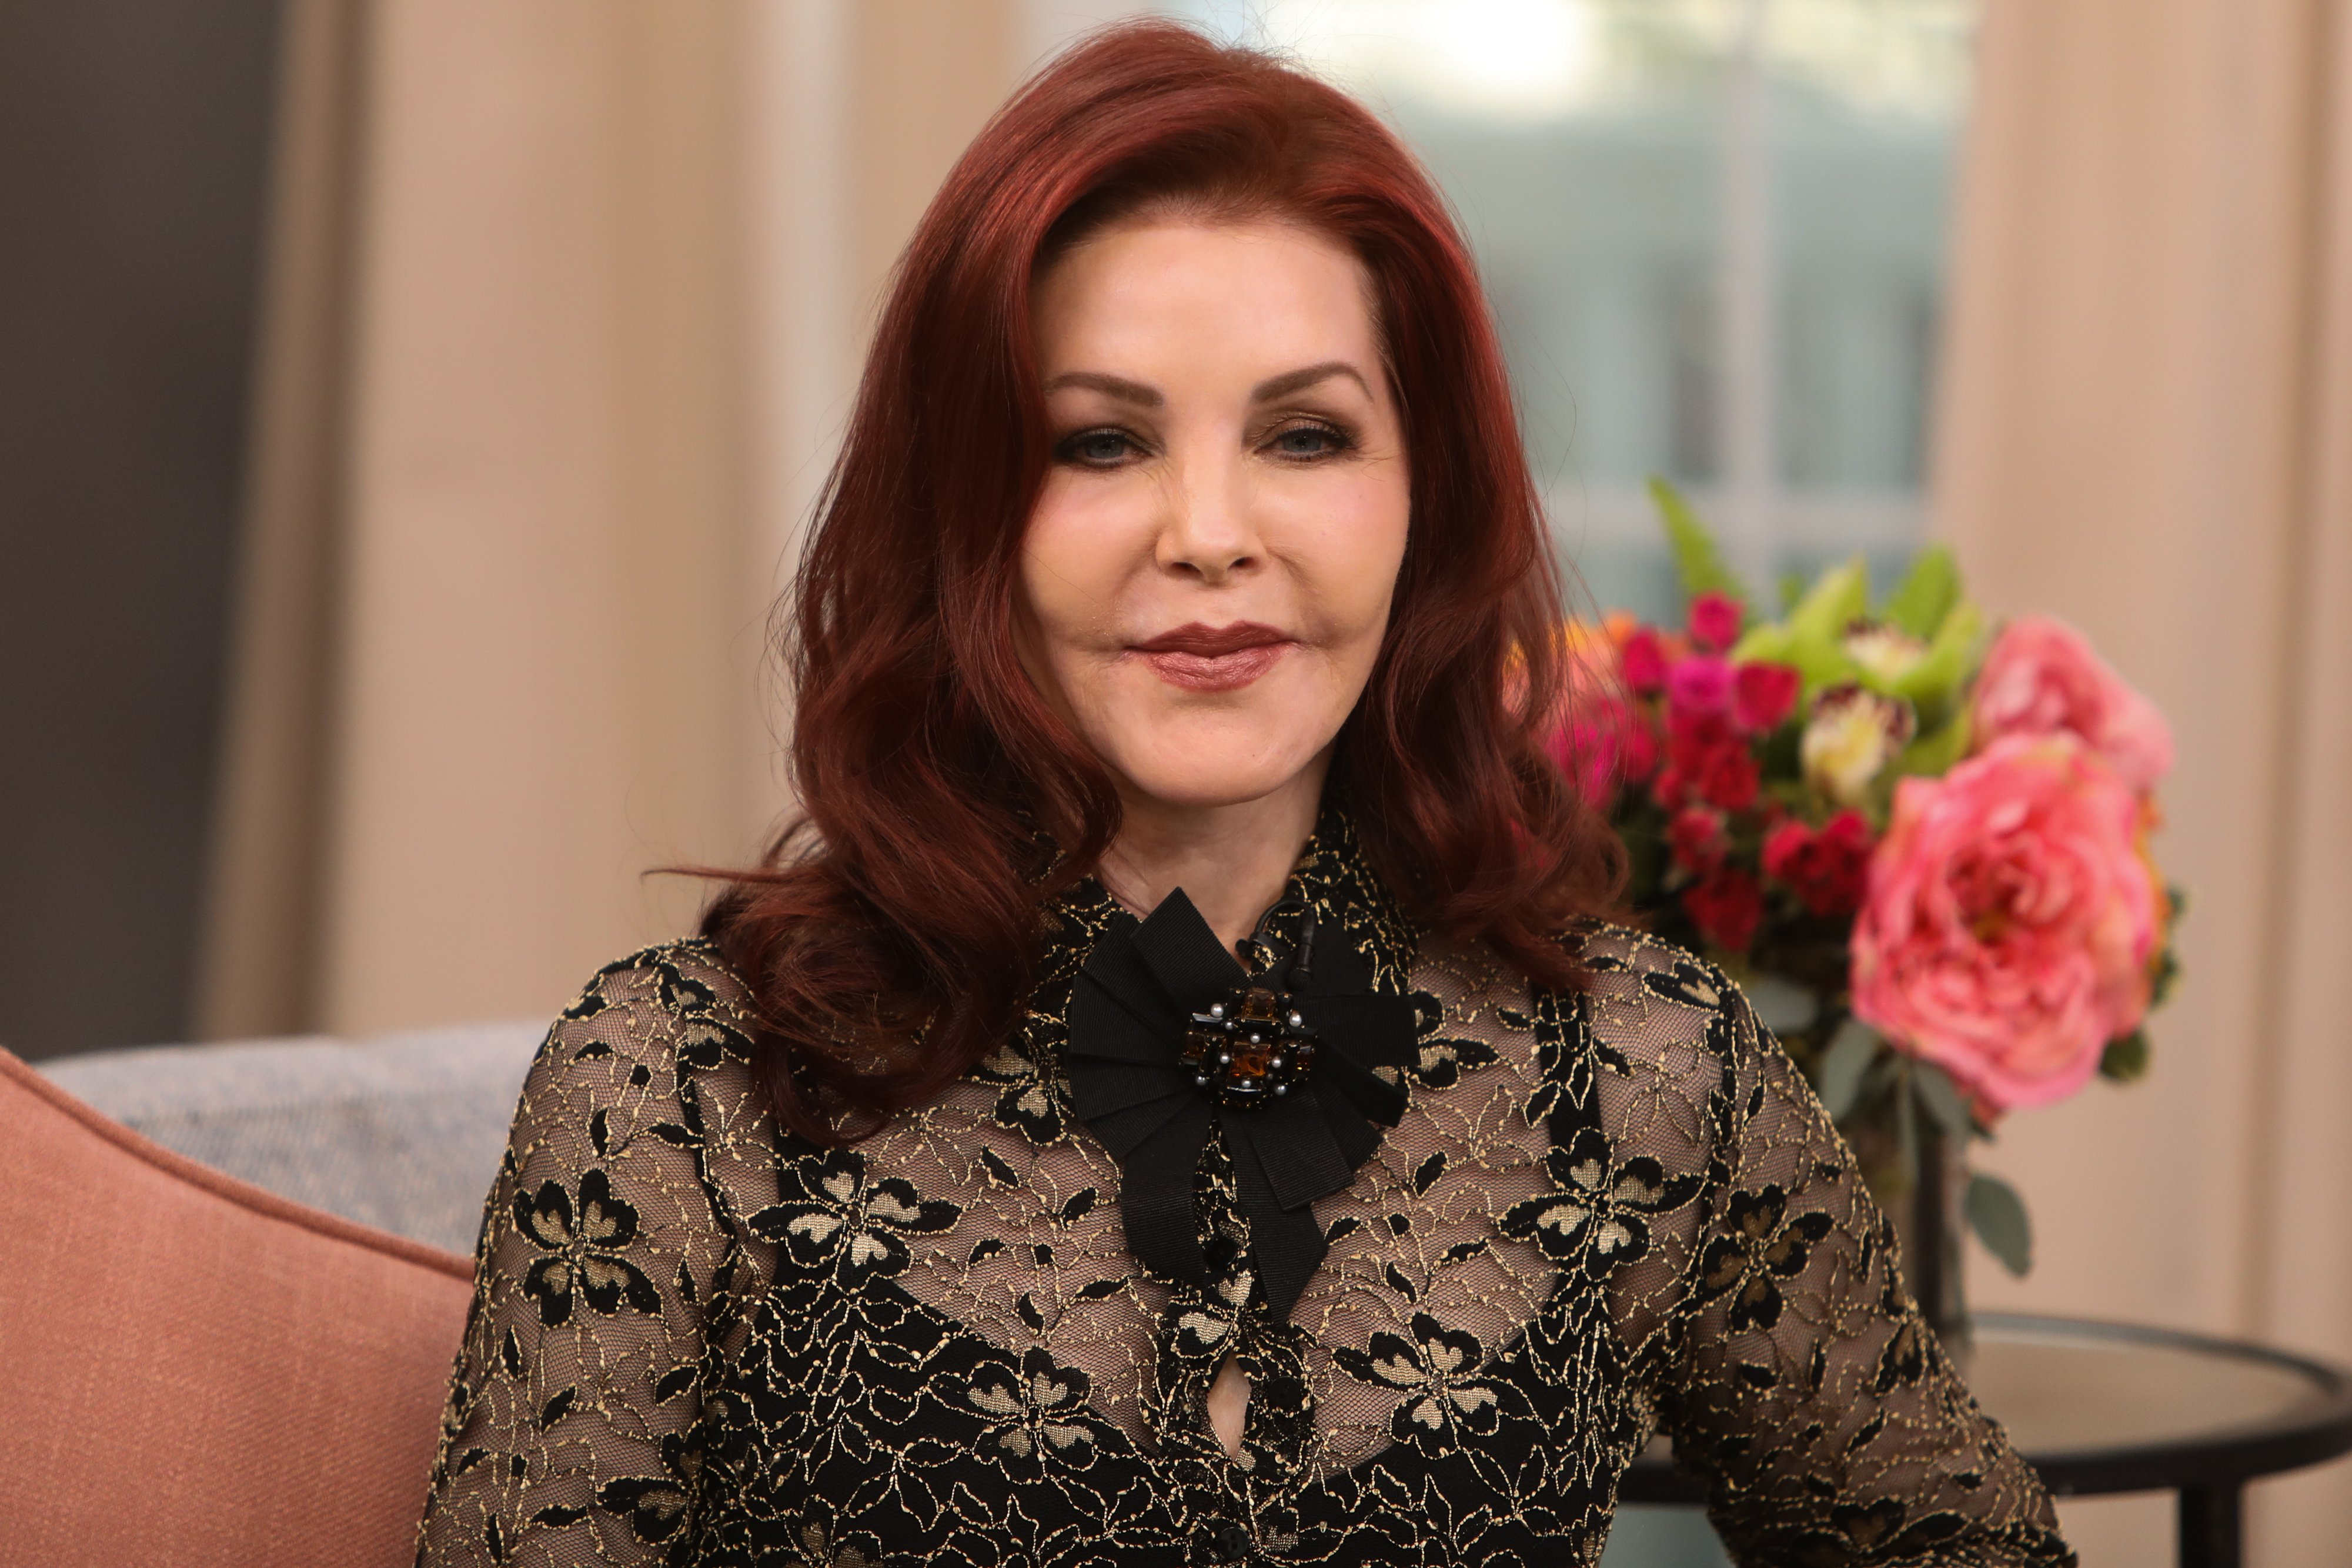 """Actress Priscilla Presley visits Hallmark Channel's """"Home & Family"""" at Universal Studios Hollywood on February 18, 2020 in Universal City, California. 